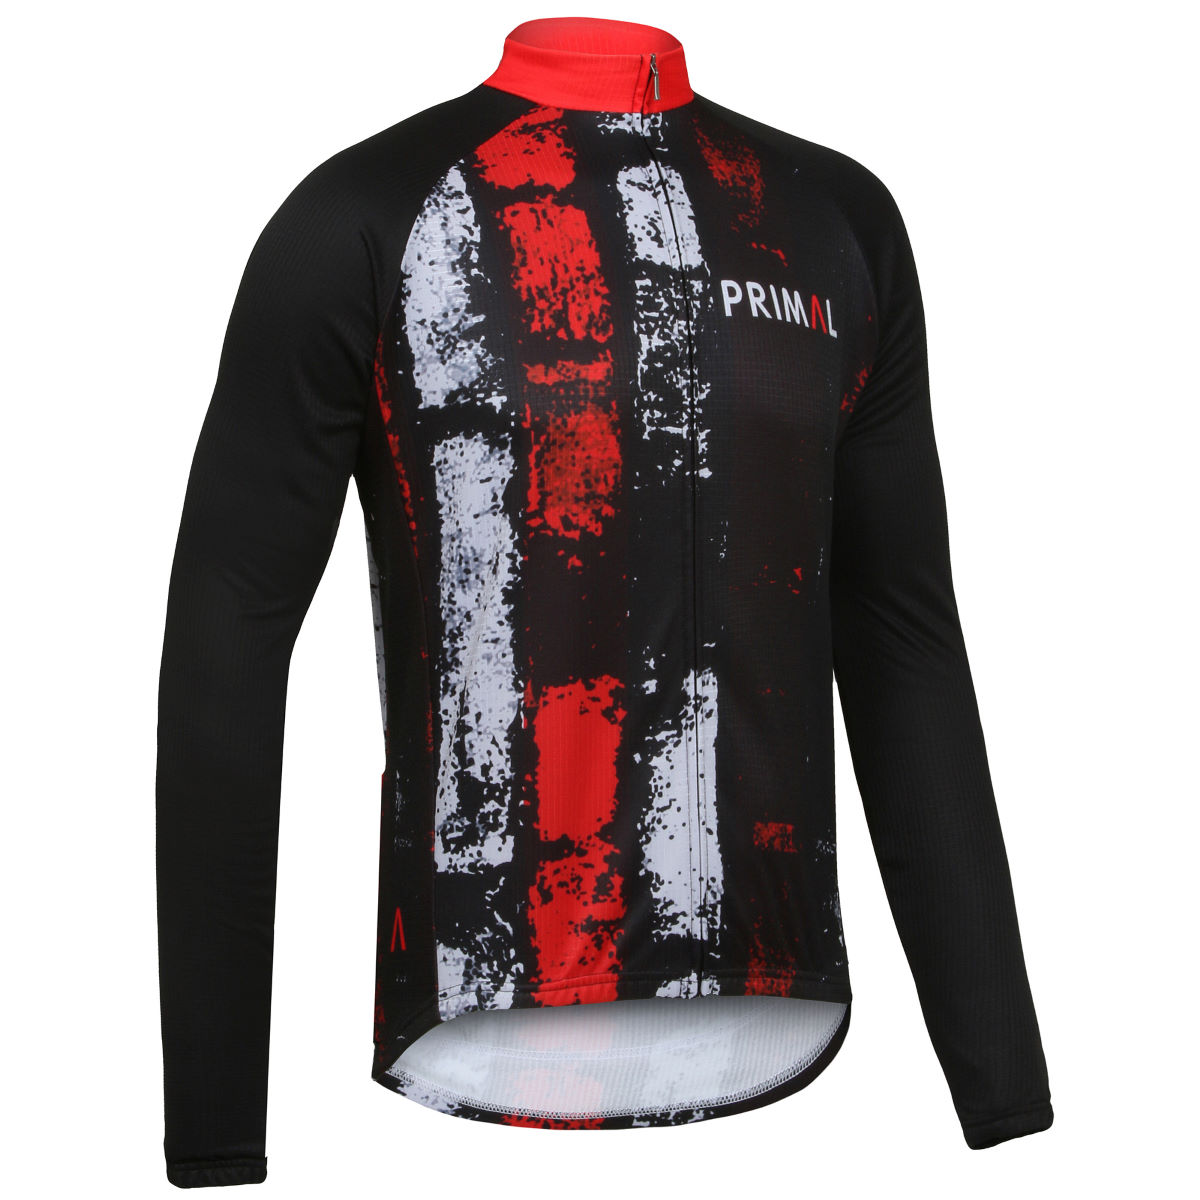 Maillot Primal Lane Change (manches longues) - S Black/Red/White Maillots vélo à manches longues